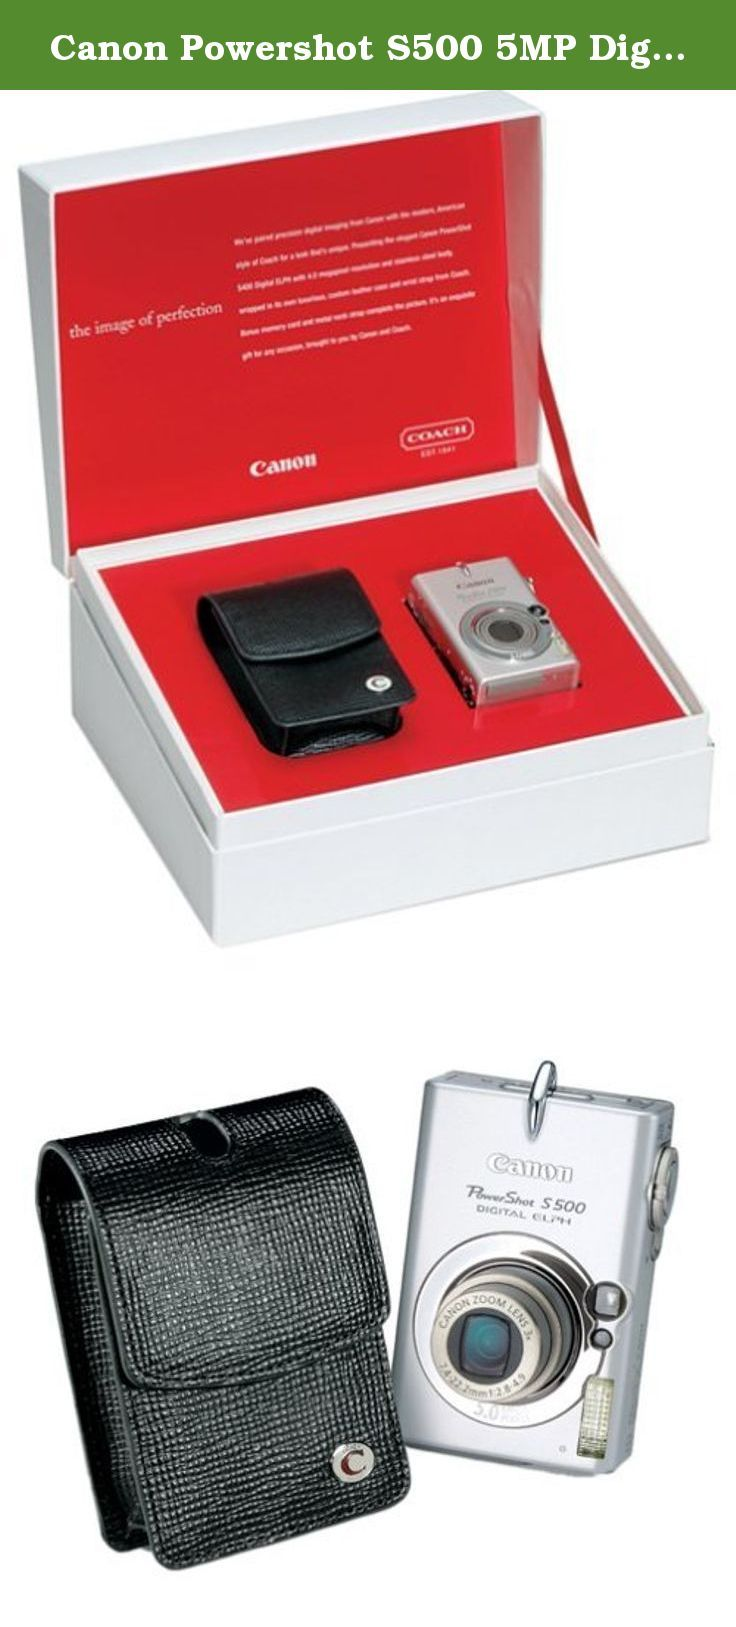 Canon Powershot S500 5mp Digital Elph With 3x Optical Zoom Coach Edition A Beautiful Match The Sleek Stainless Stee Coach Leather Powershot Digital Camera